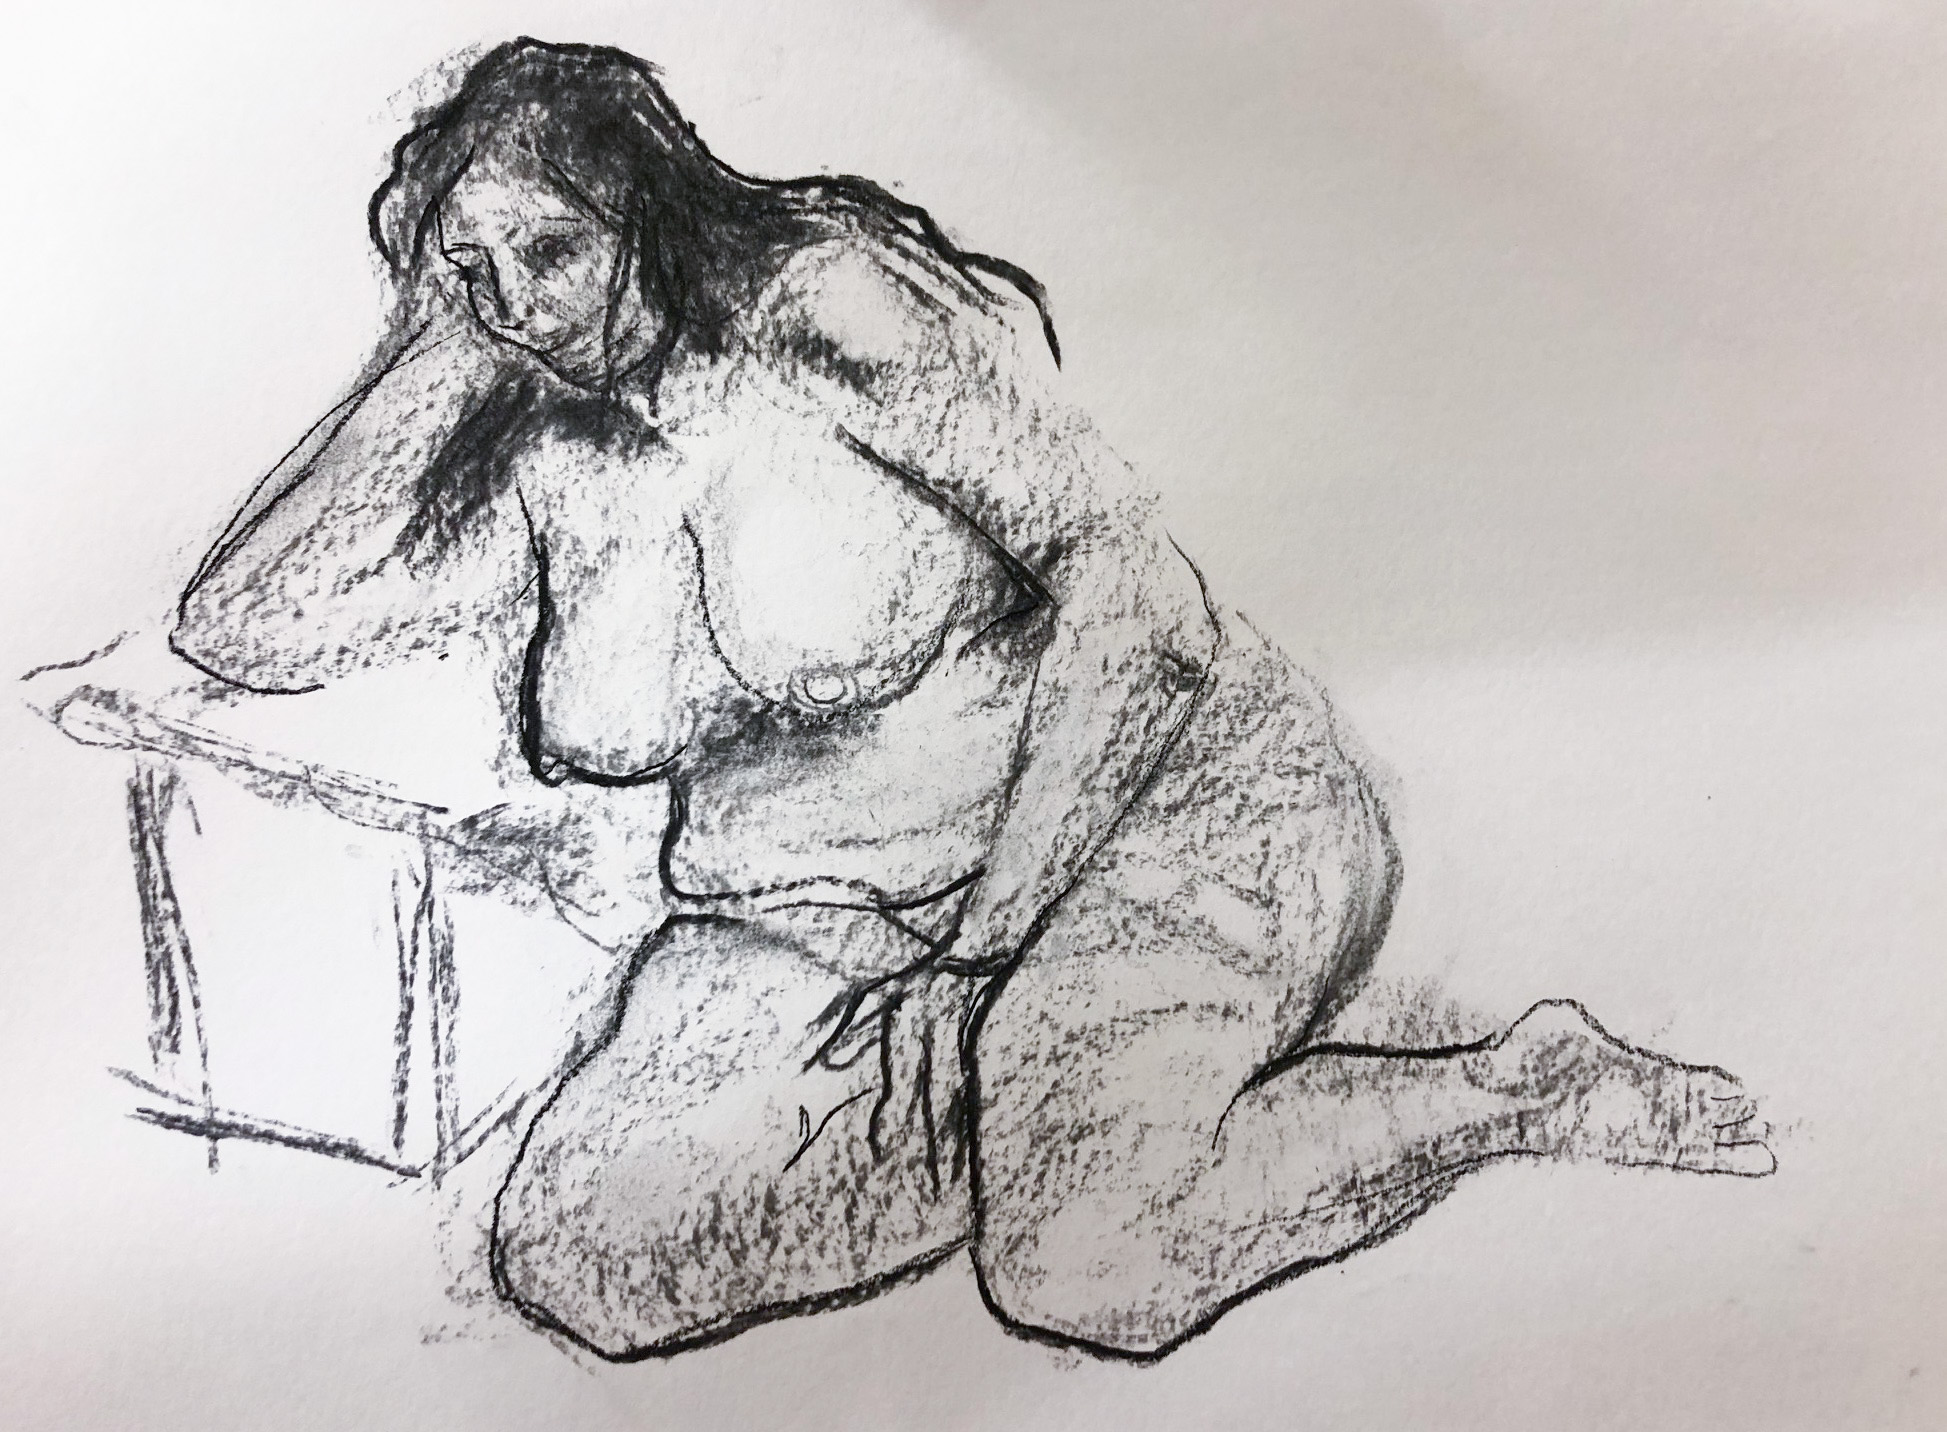 Class Artwork – Lifedrawing - Term 2, 2019